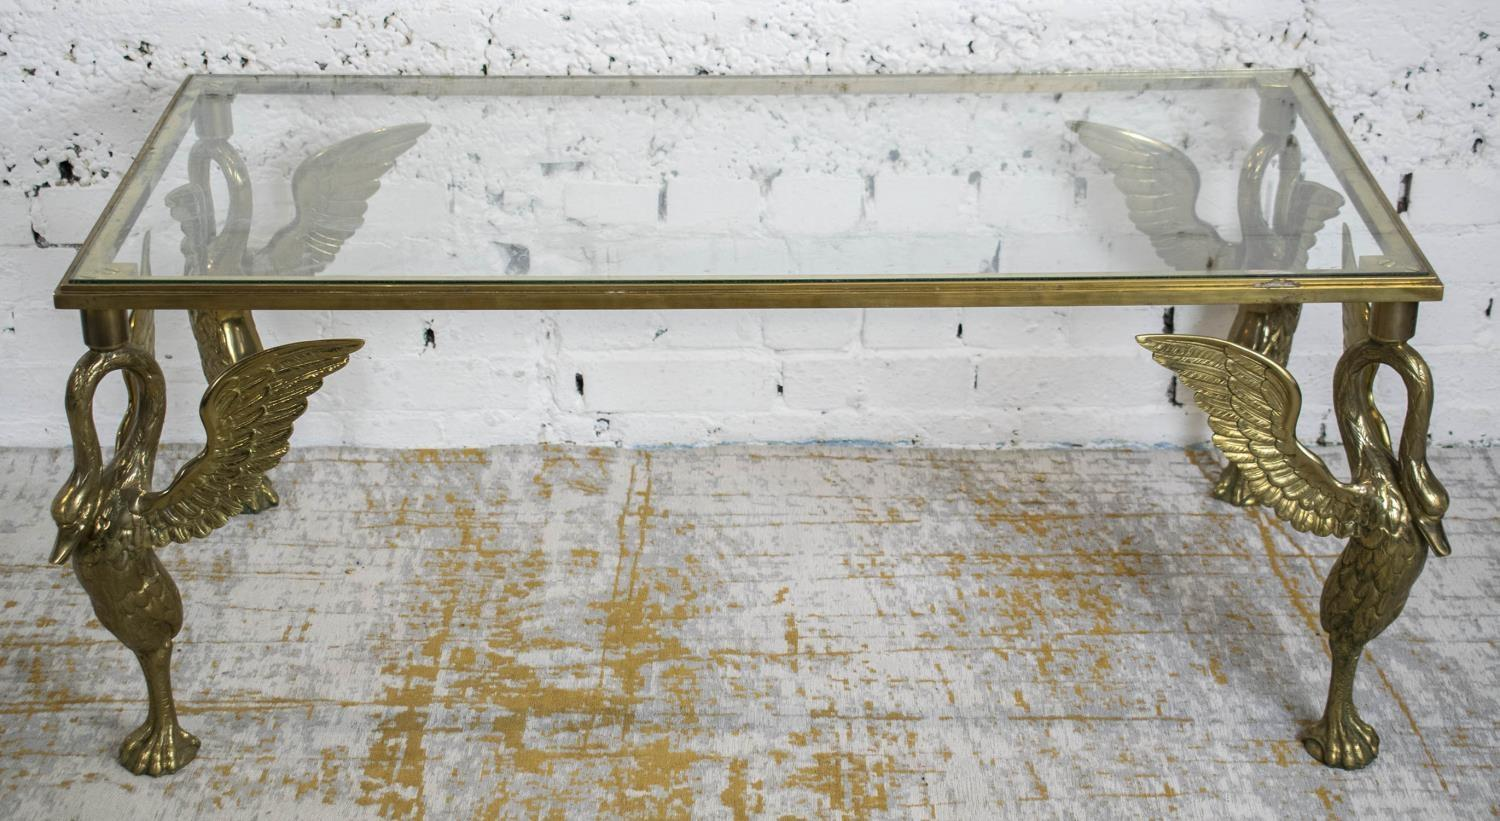 LOW TABLE, 20th century brass with rectangular glass top on swan supports, 51cm H x 127cm W x 66cm - Image 2 of 3